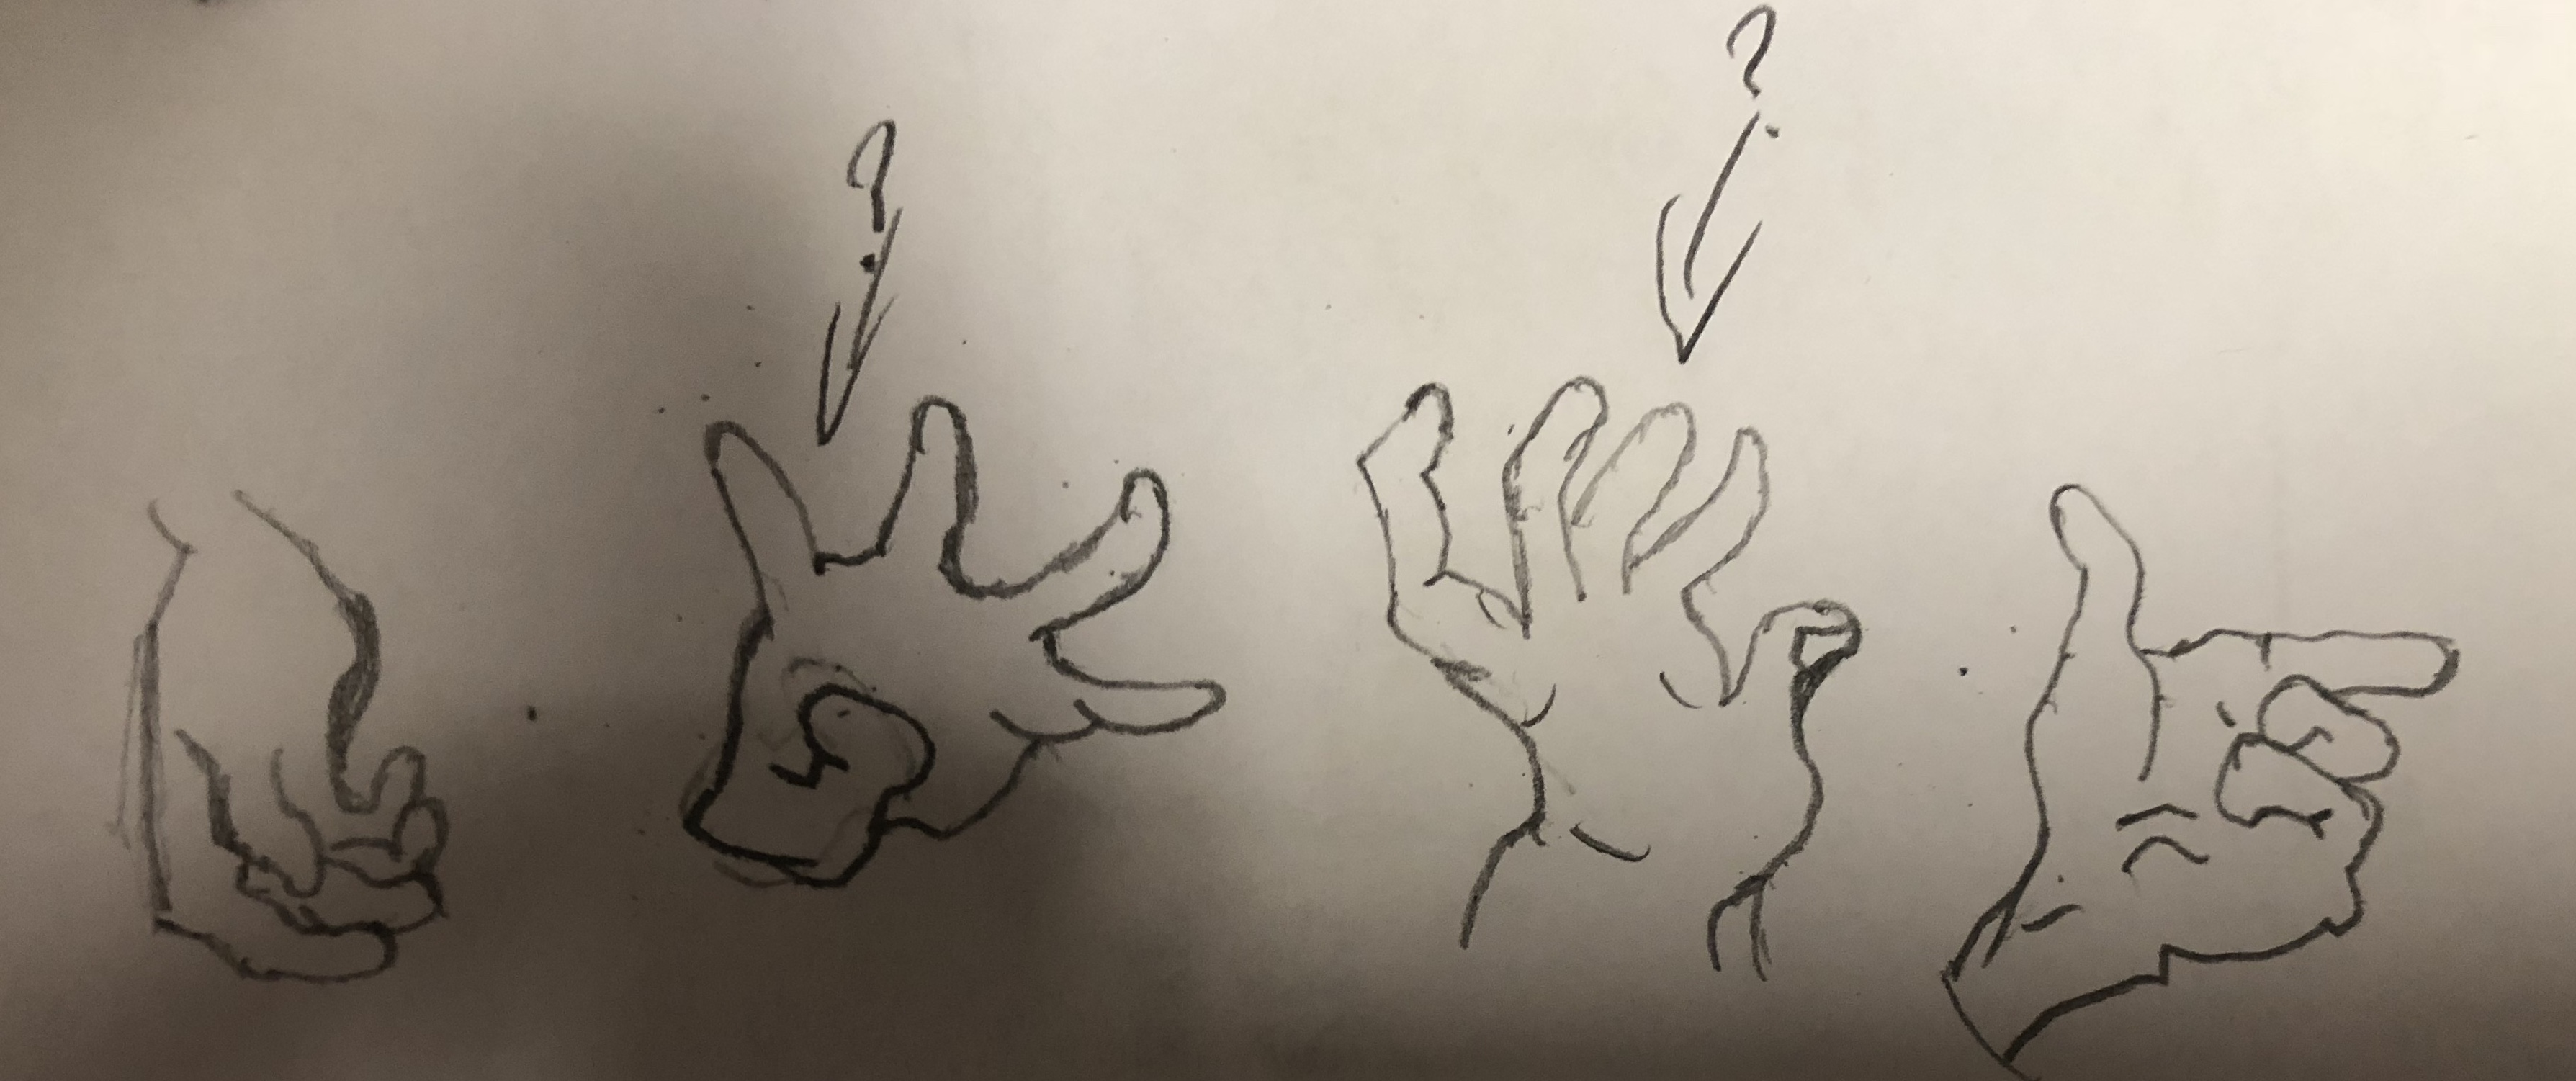 Hand Anatomy Day6 By Michael Boers Streak 0 Streak Club